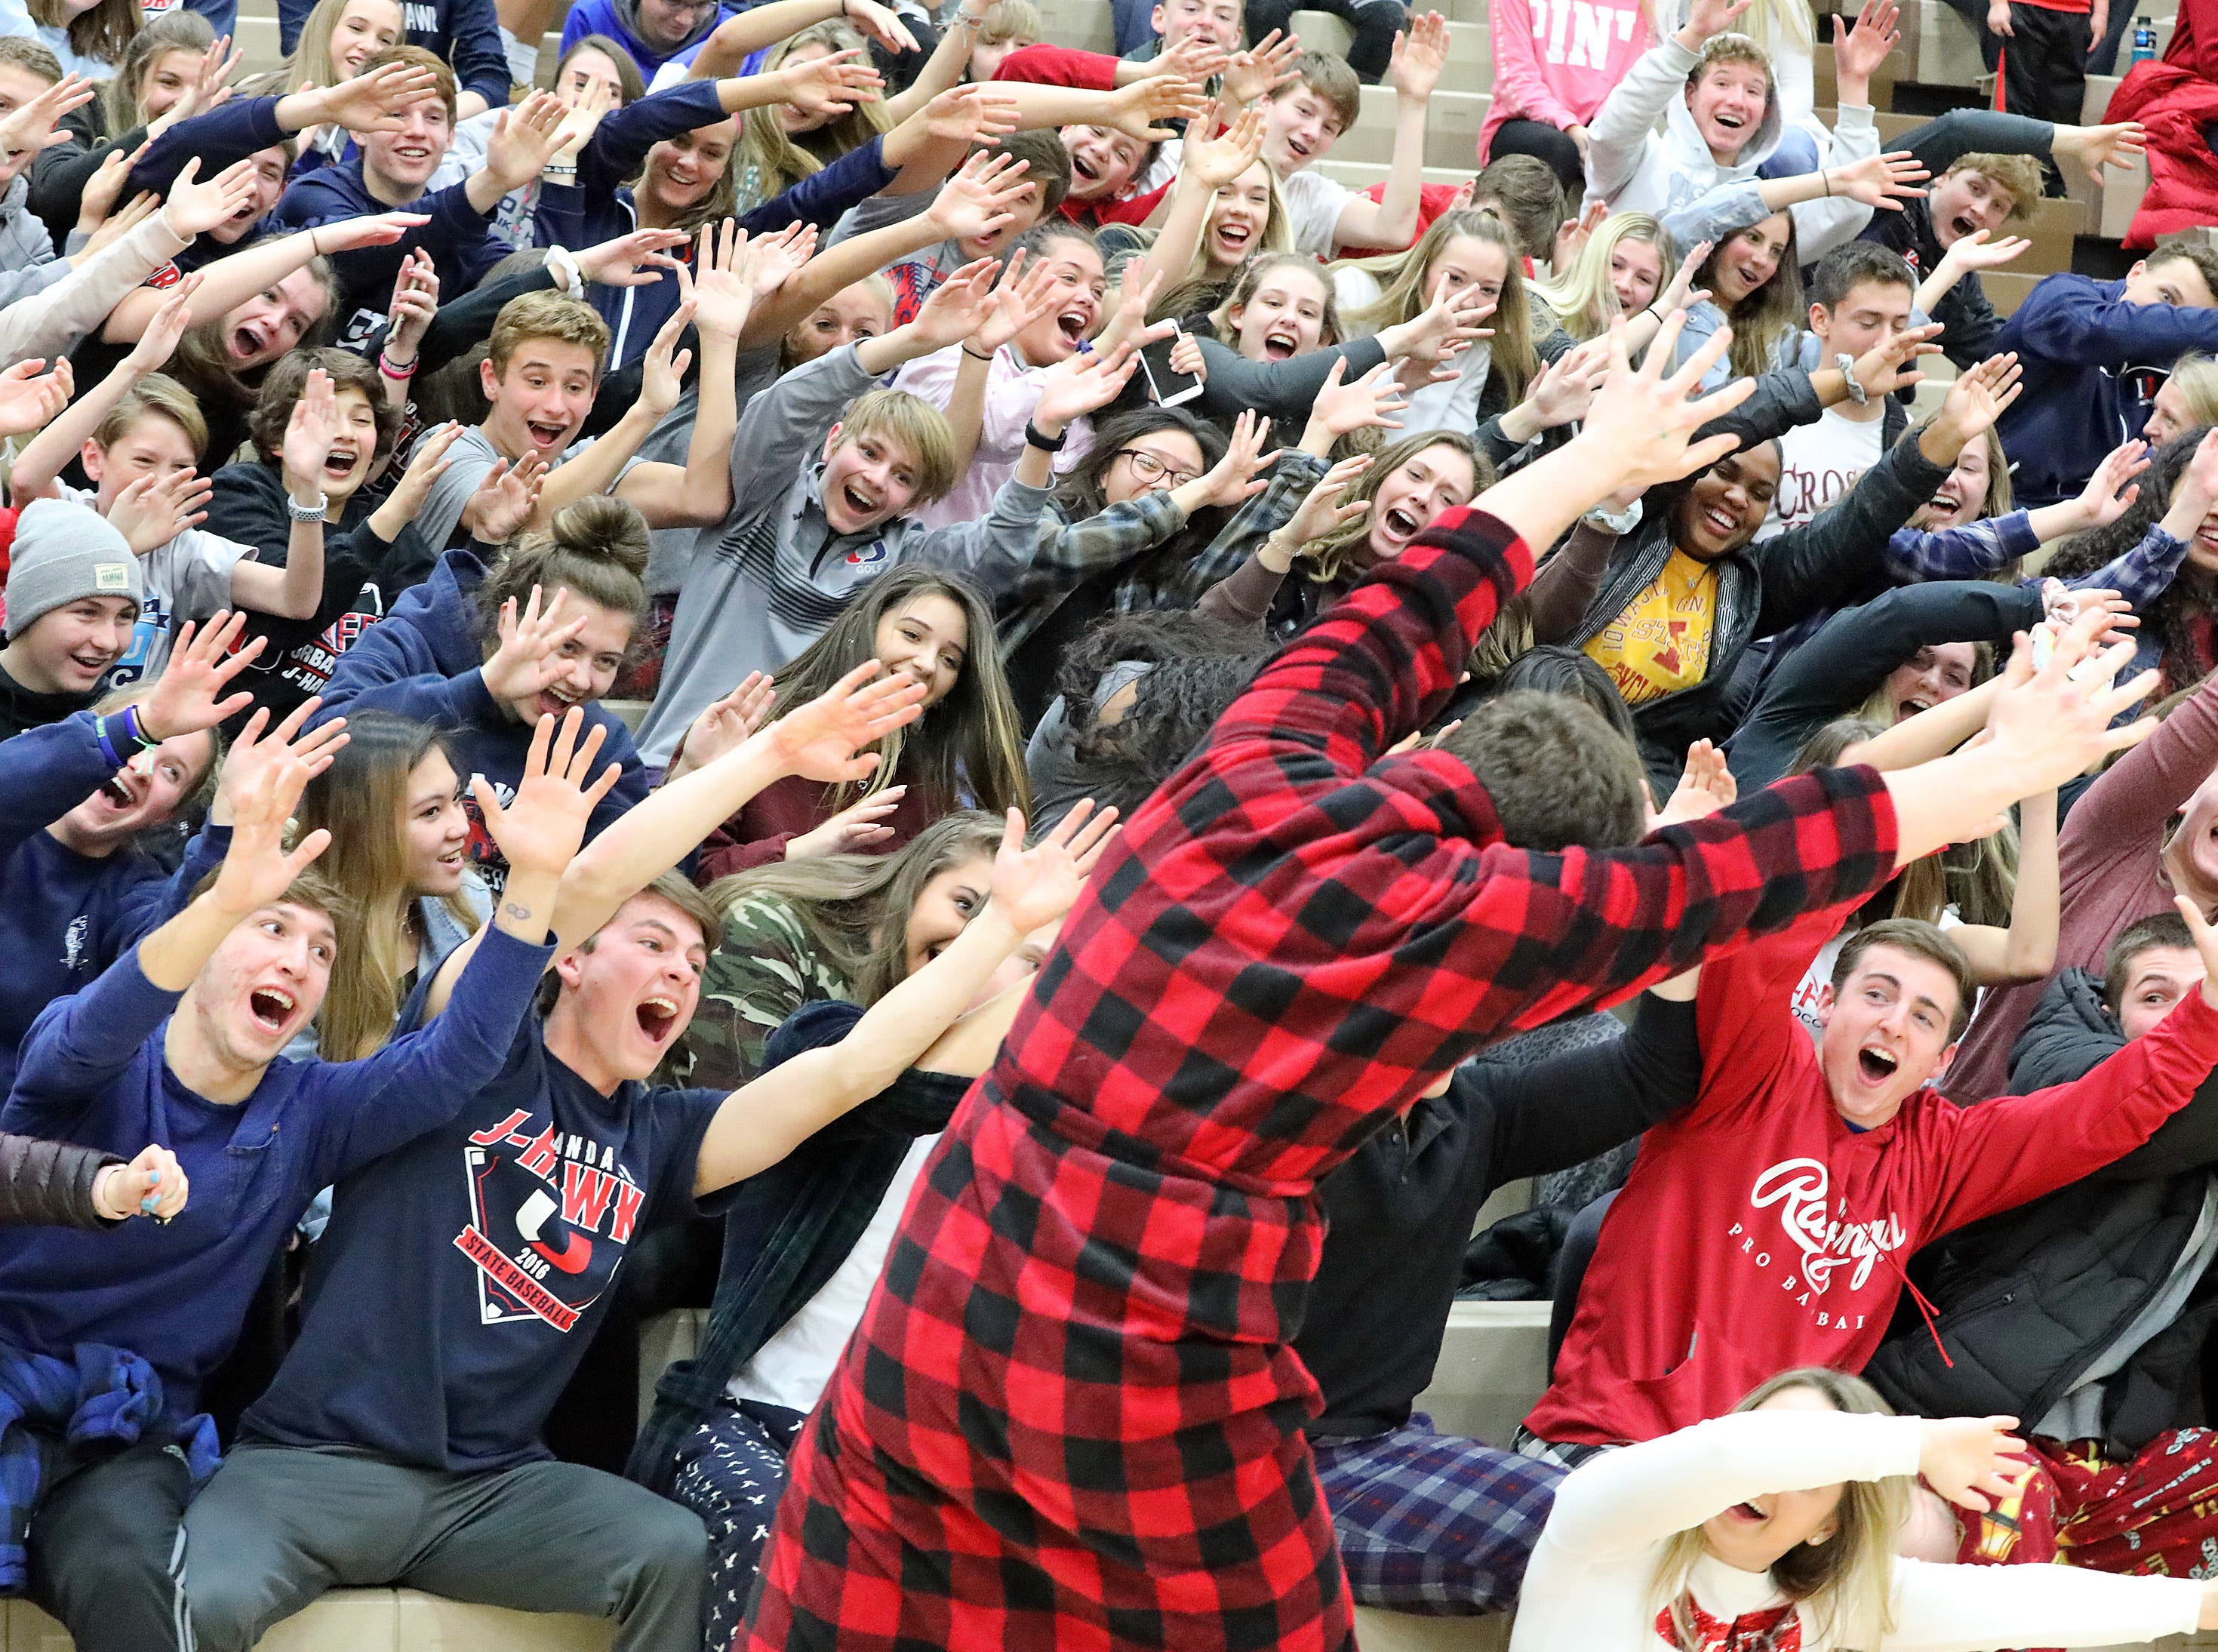 Urbandale senior Evan Smith and his red flannel bath robe fire up the students to the left as the Ankeny Hawks compete against the Urbandale J-Hawks in high school basketball on Friday, Dec. 14, 2018 at Urbandale High School. Ankeny won 62 to 52 to remain undefeated at 6-0.